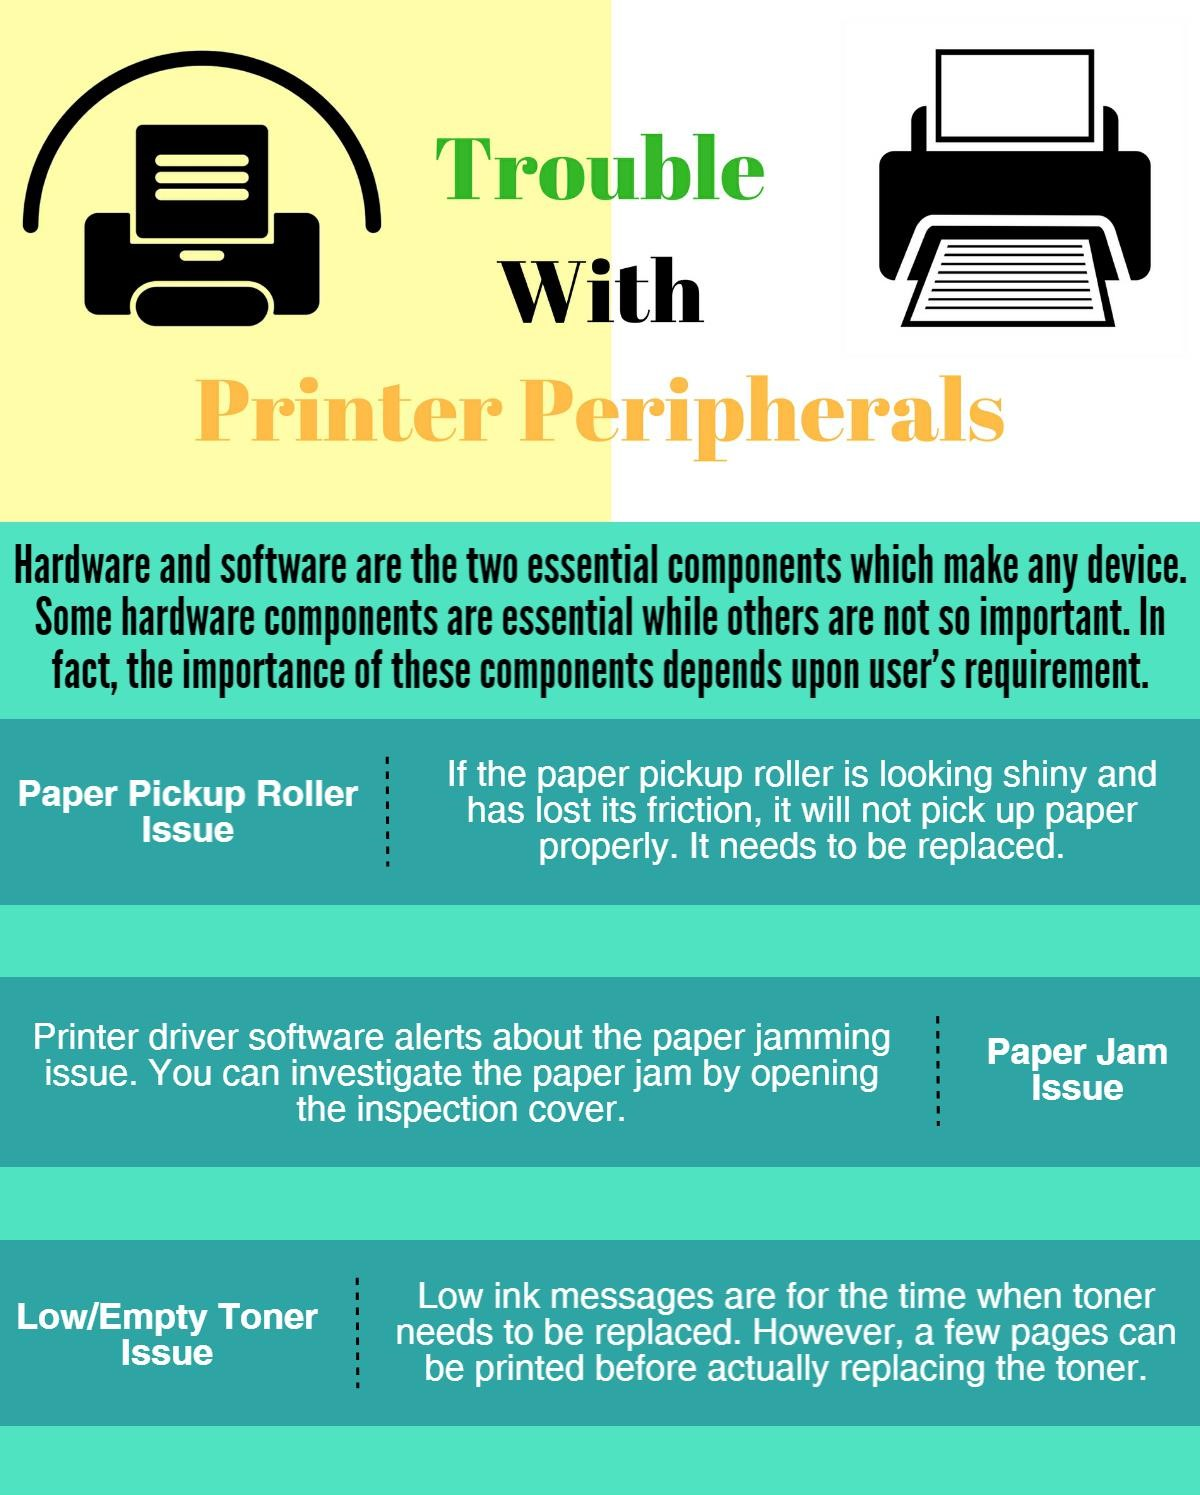 How to Fix Epson Printer Peripherals Issue | Epson Printer Support